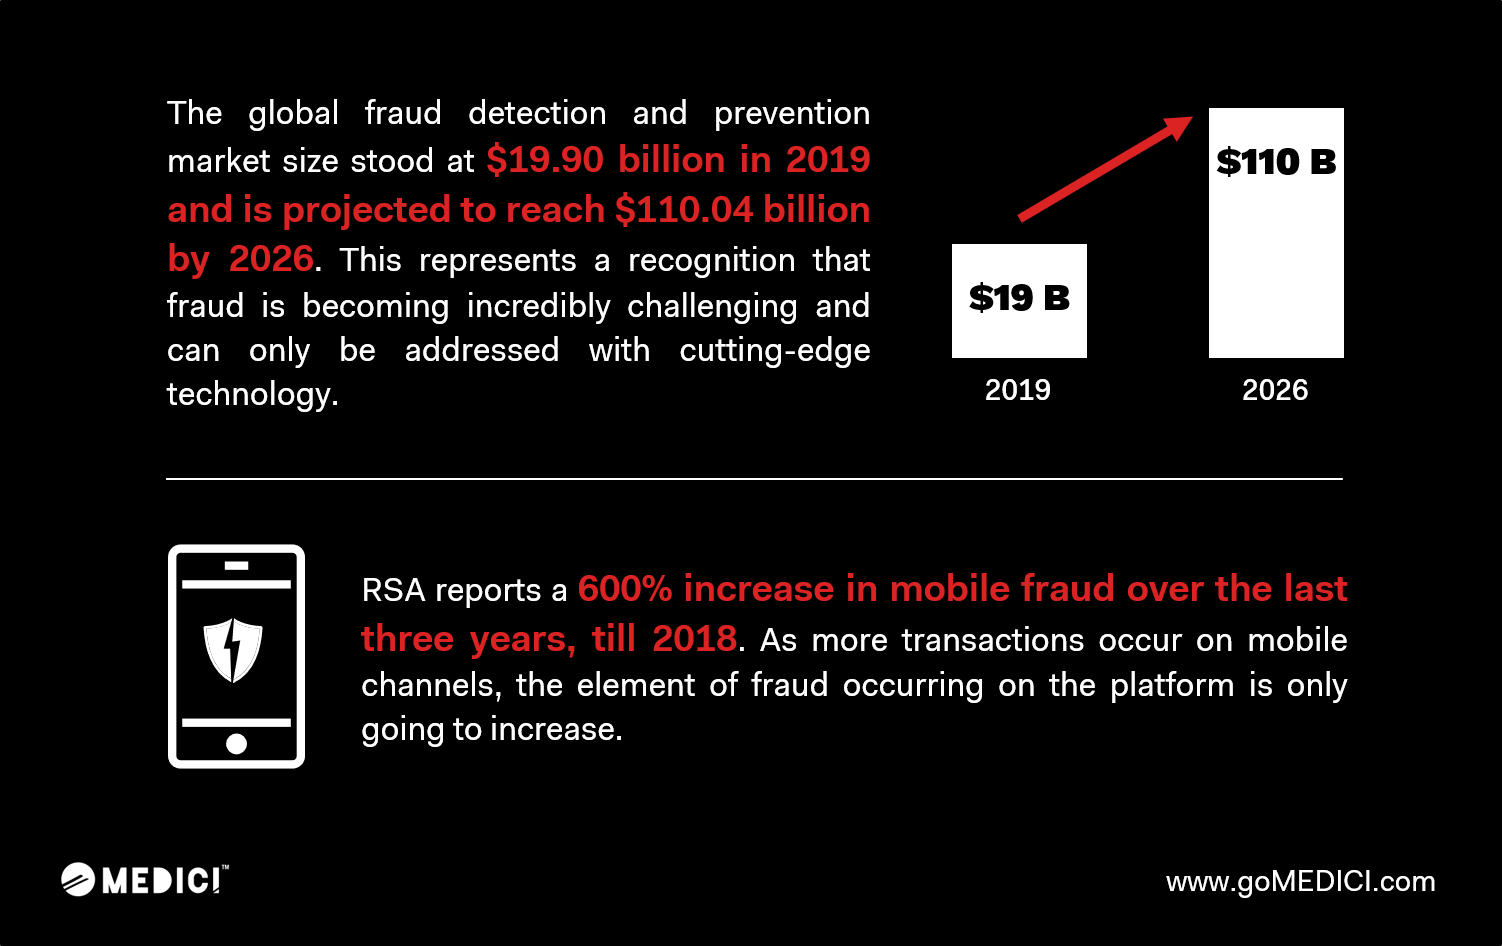 Medici - Global Fraud Detection and Prevention